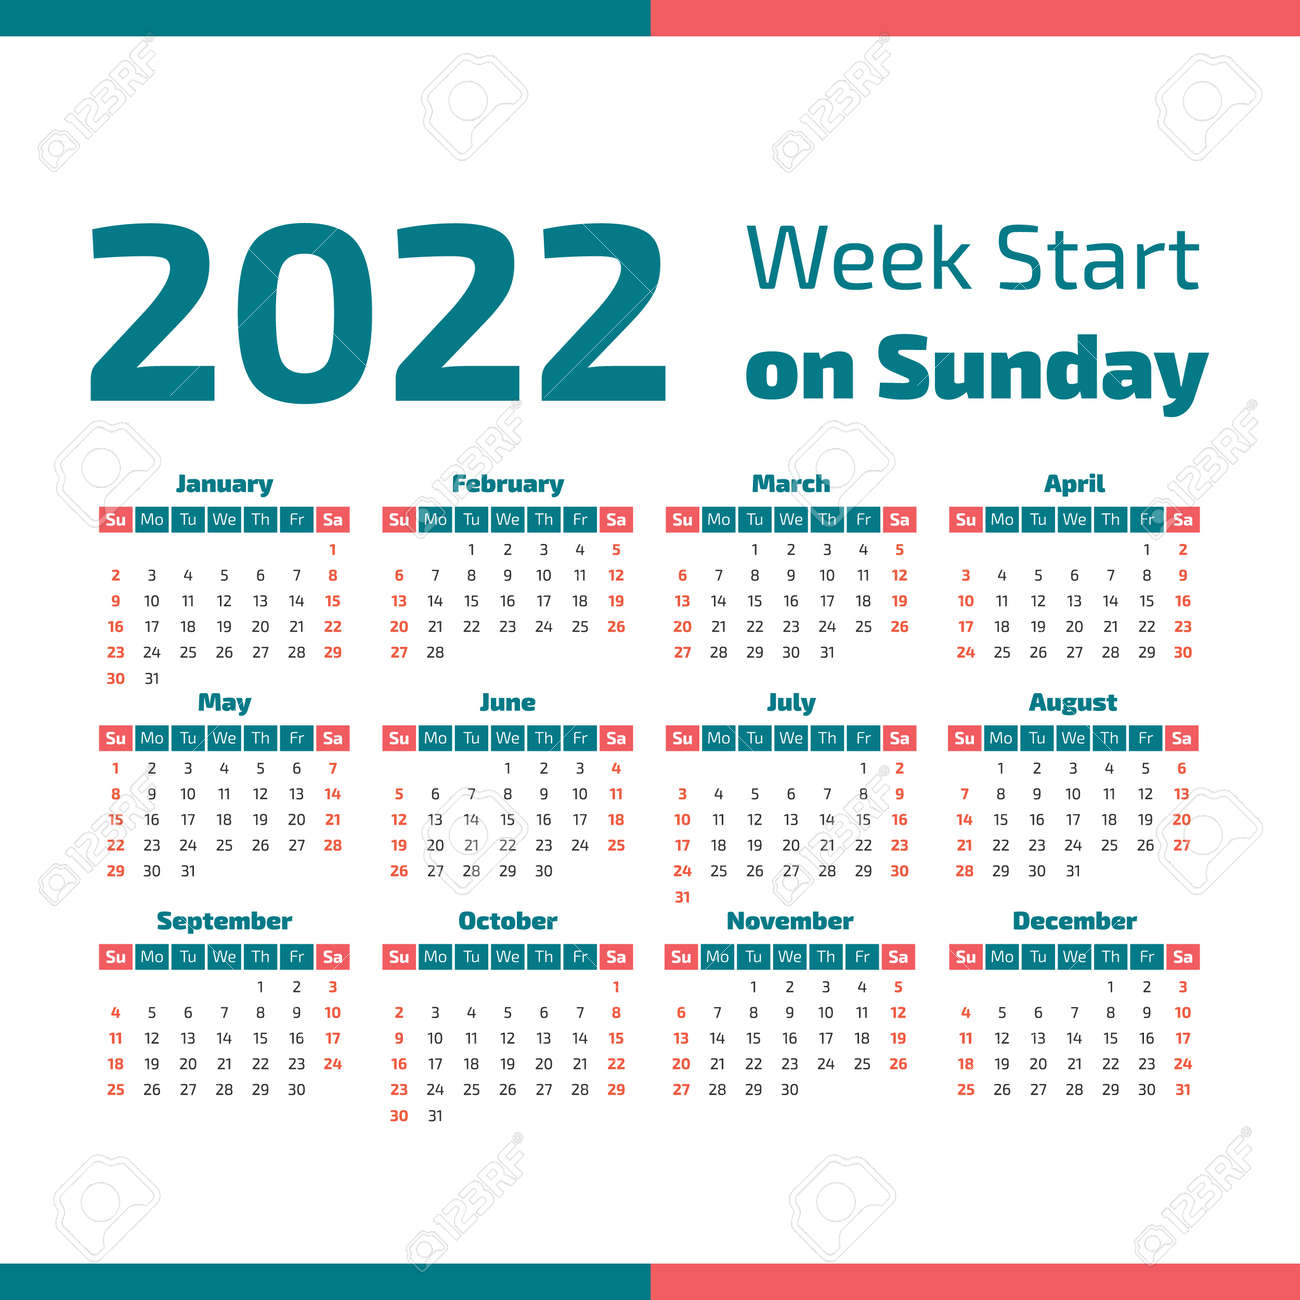 Week Number Calendar 2022.Simple 2022 Year Calendar Week Starts On Sunday Stock Photo Picture And Royalty Free Image Image 101518042